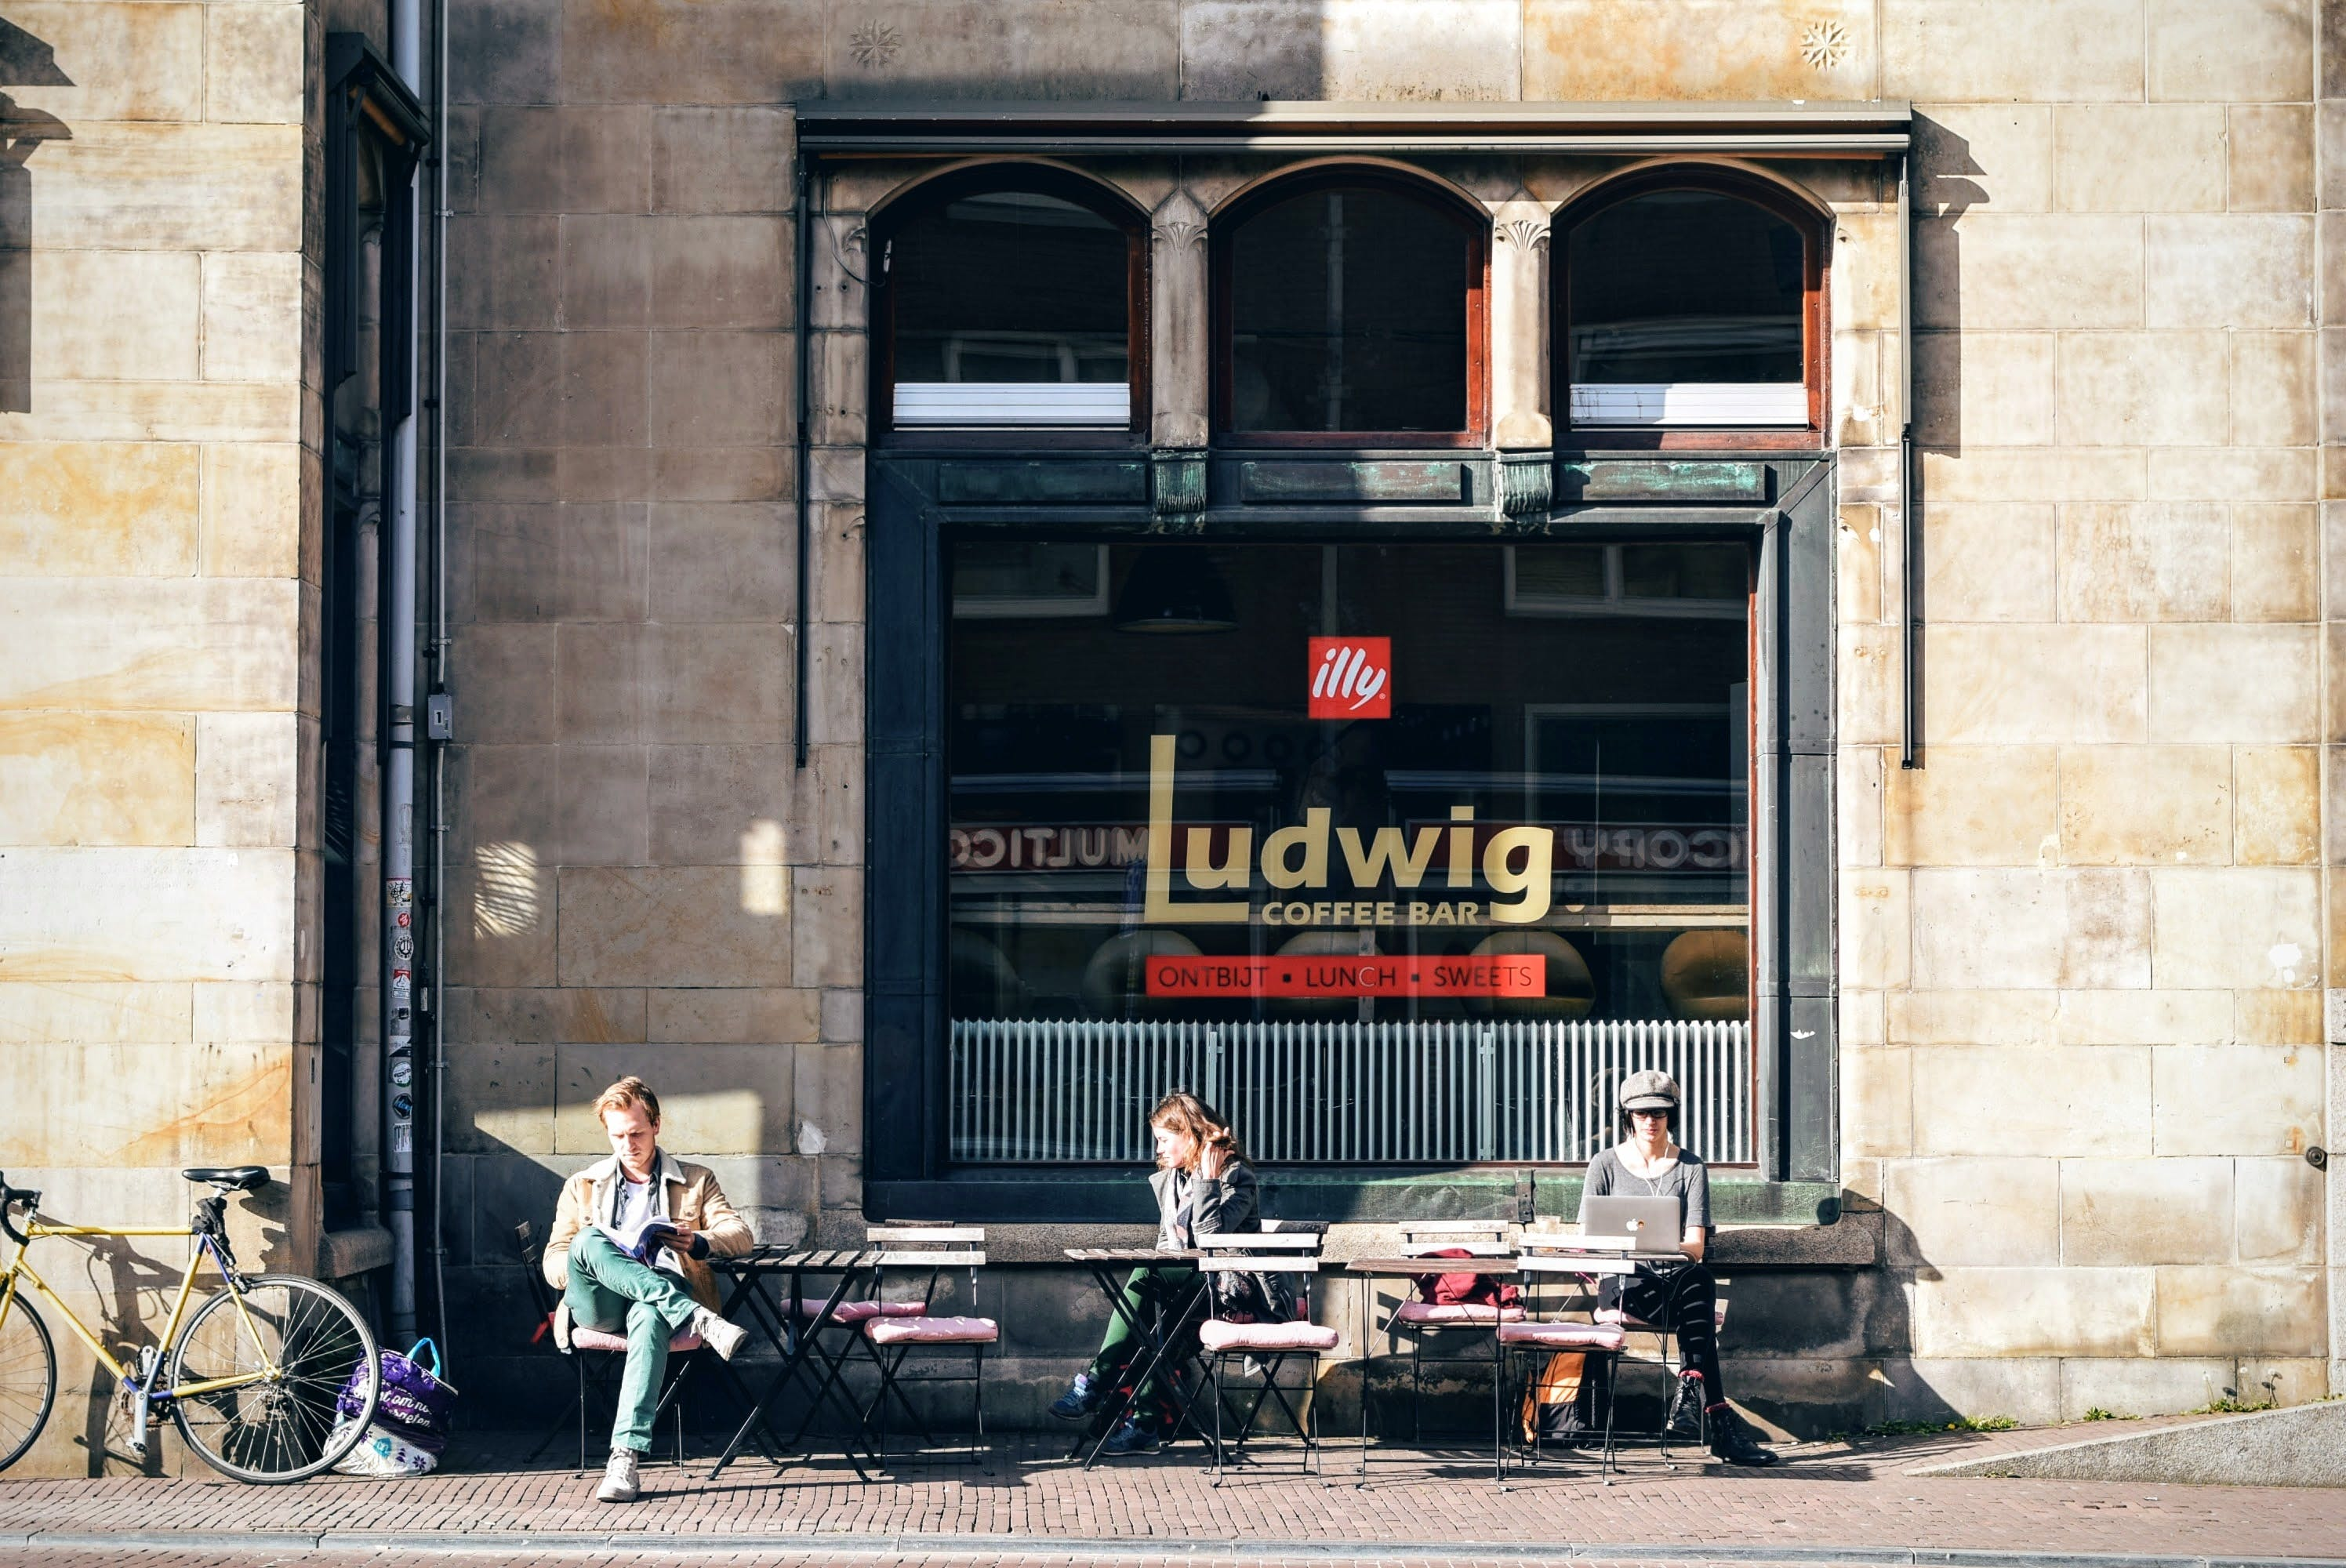 Three People Sitting on Bench in Front of Ludwig Coffee Bar